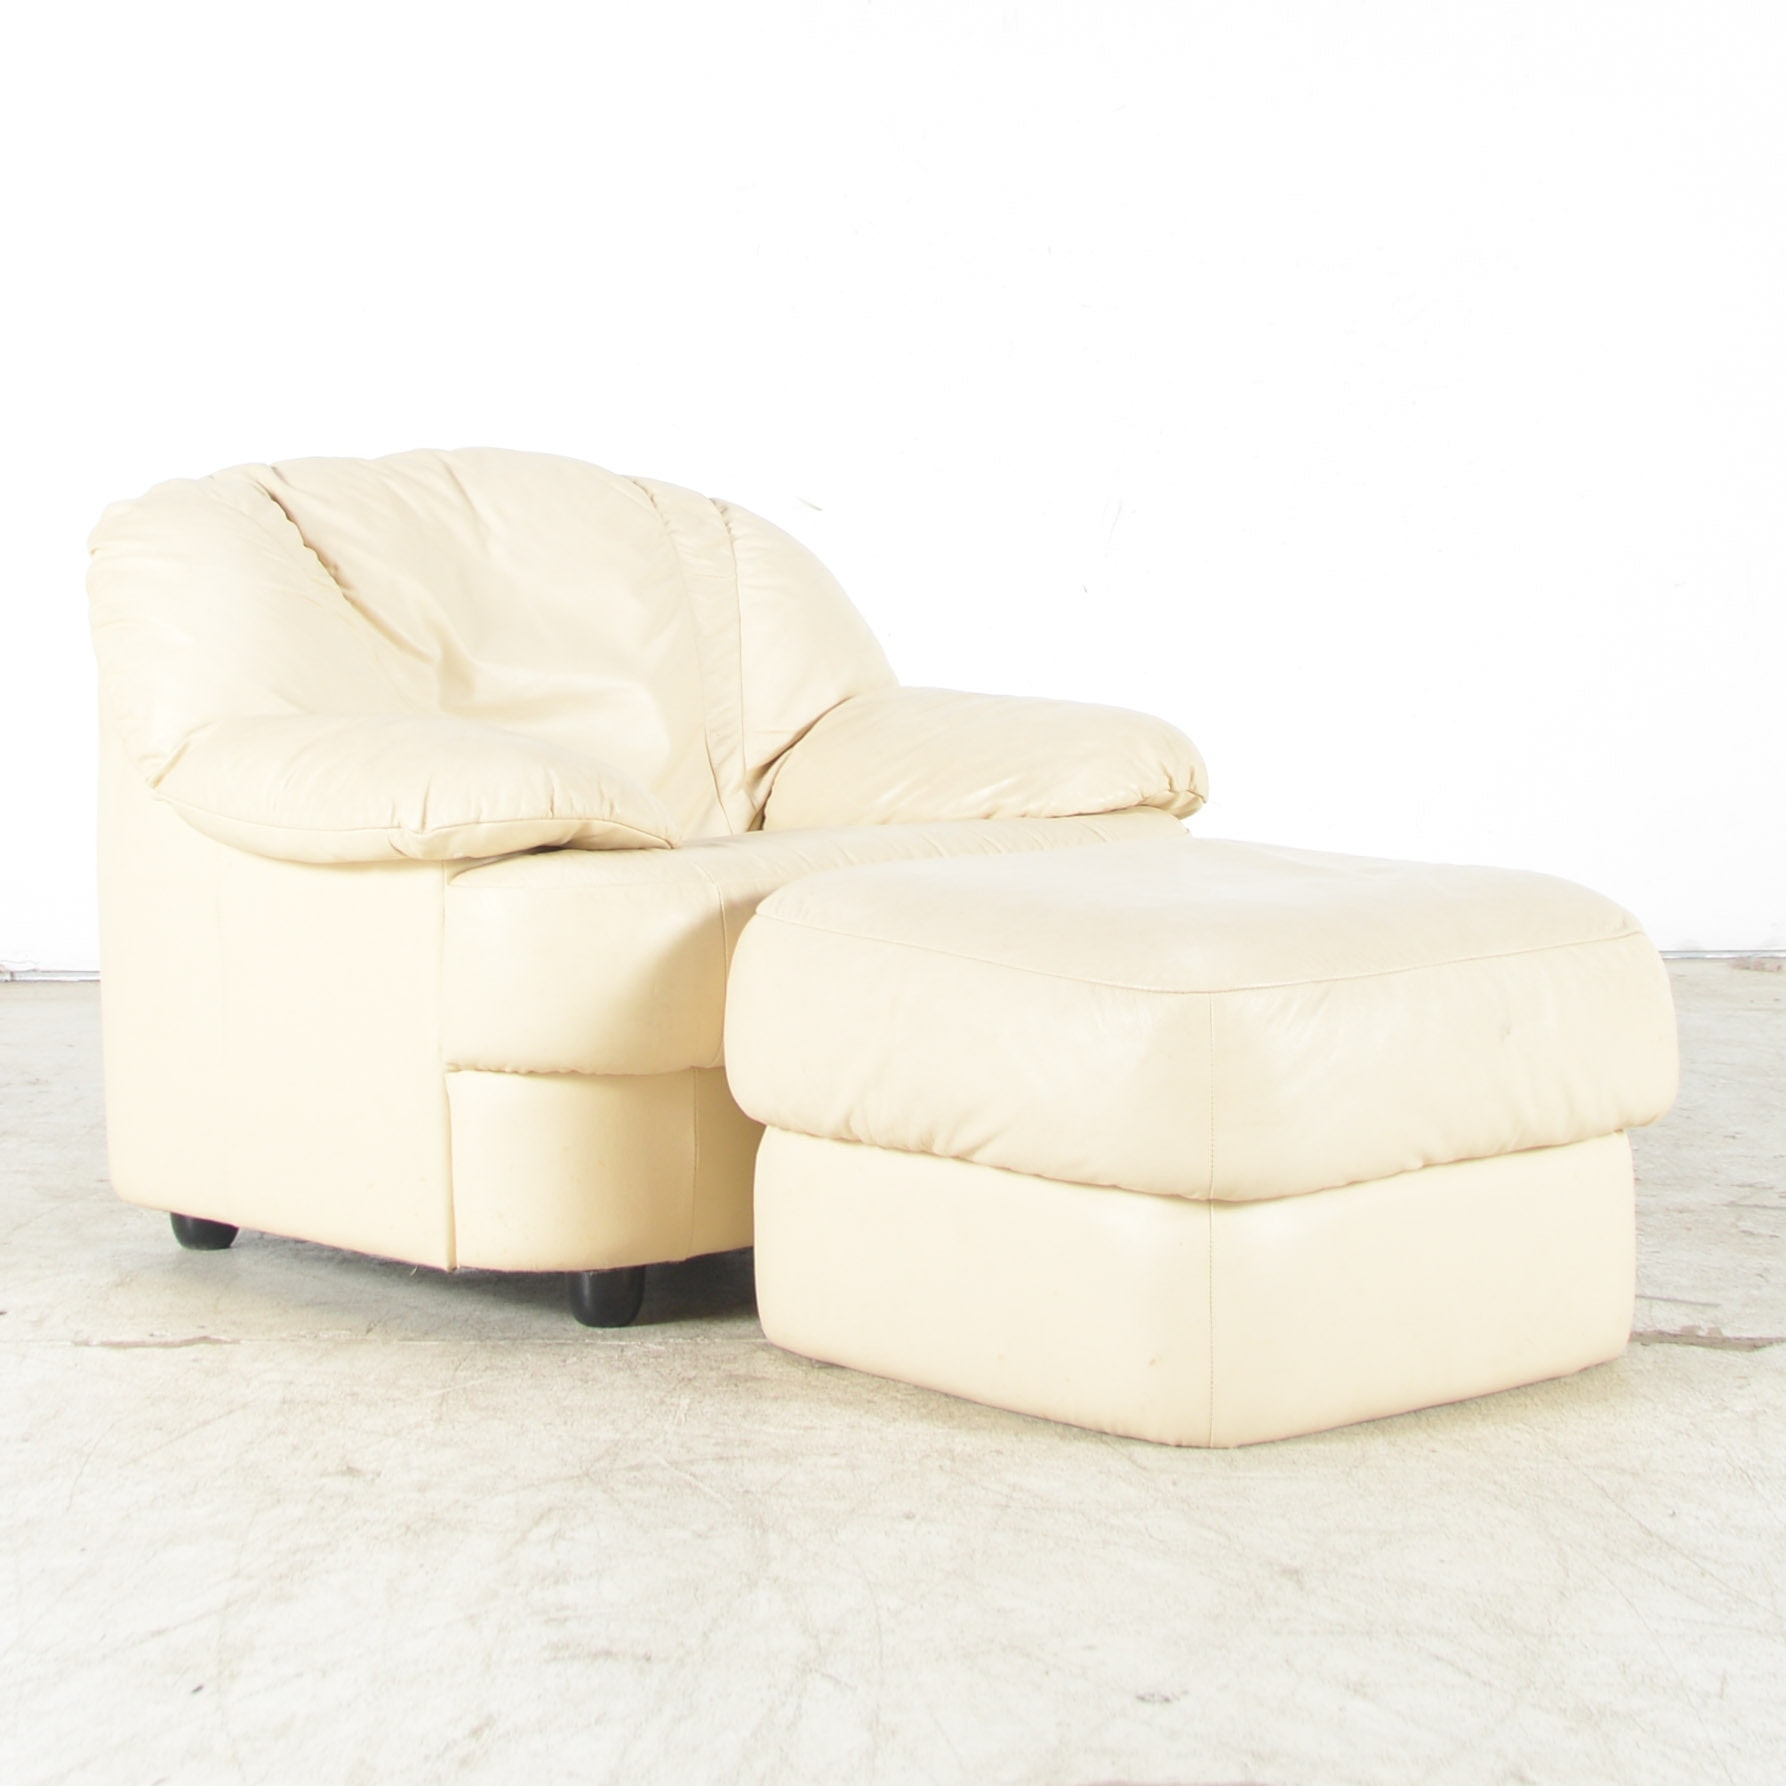 Overstuffed Cream Leather Club Chair with Ottoman